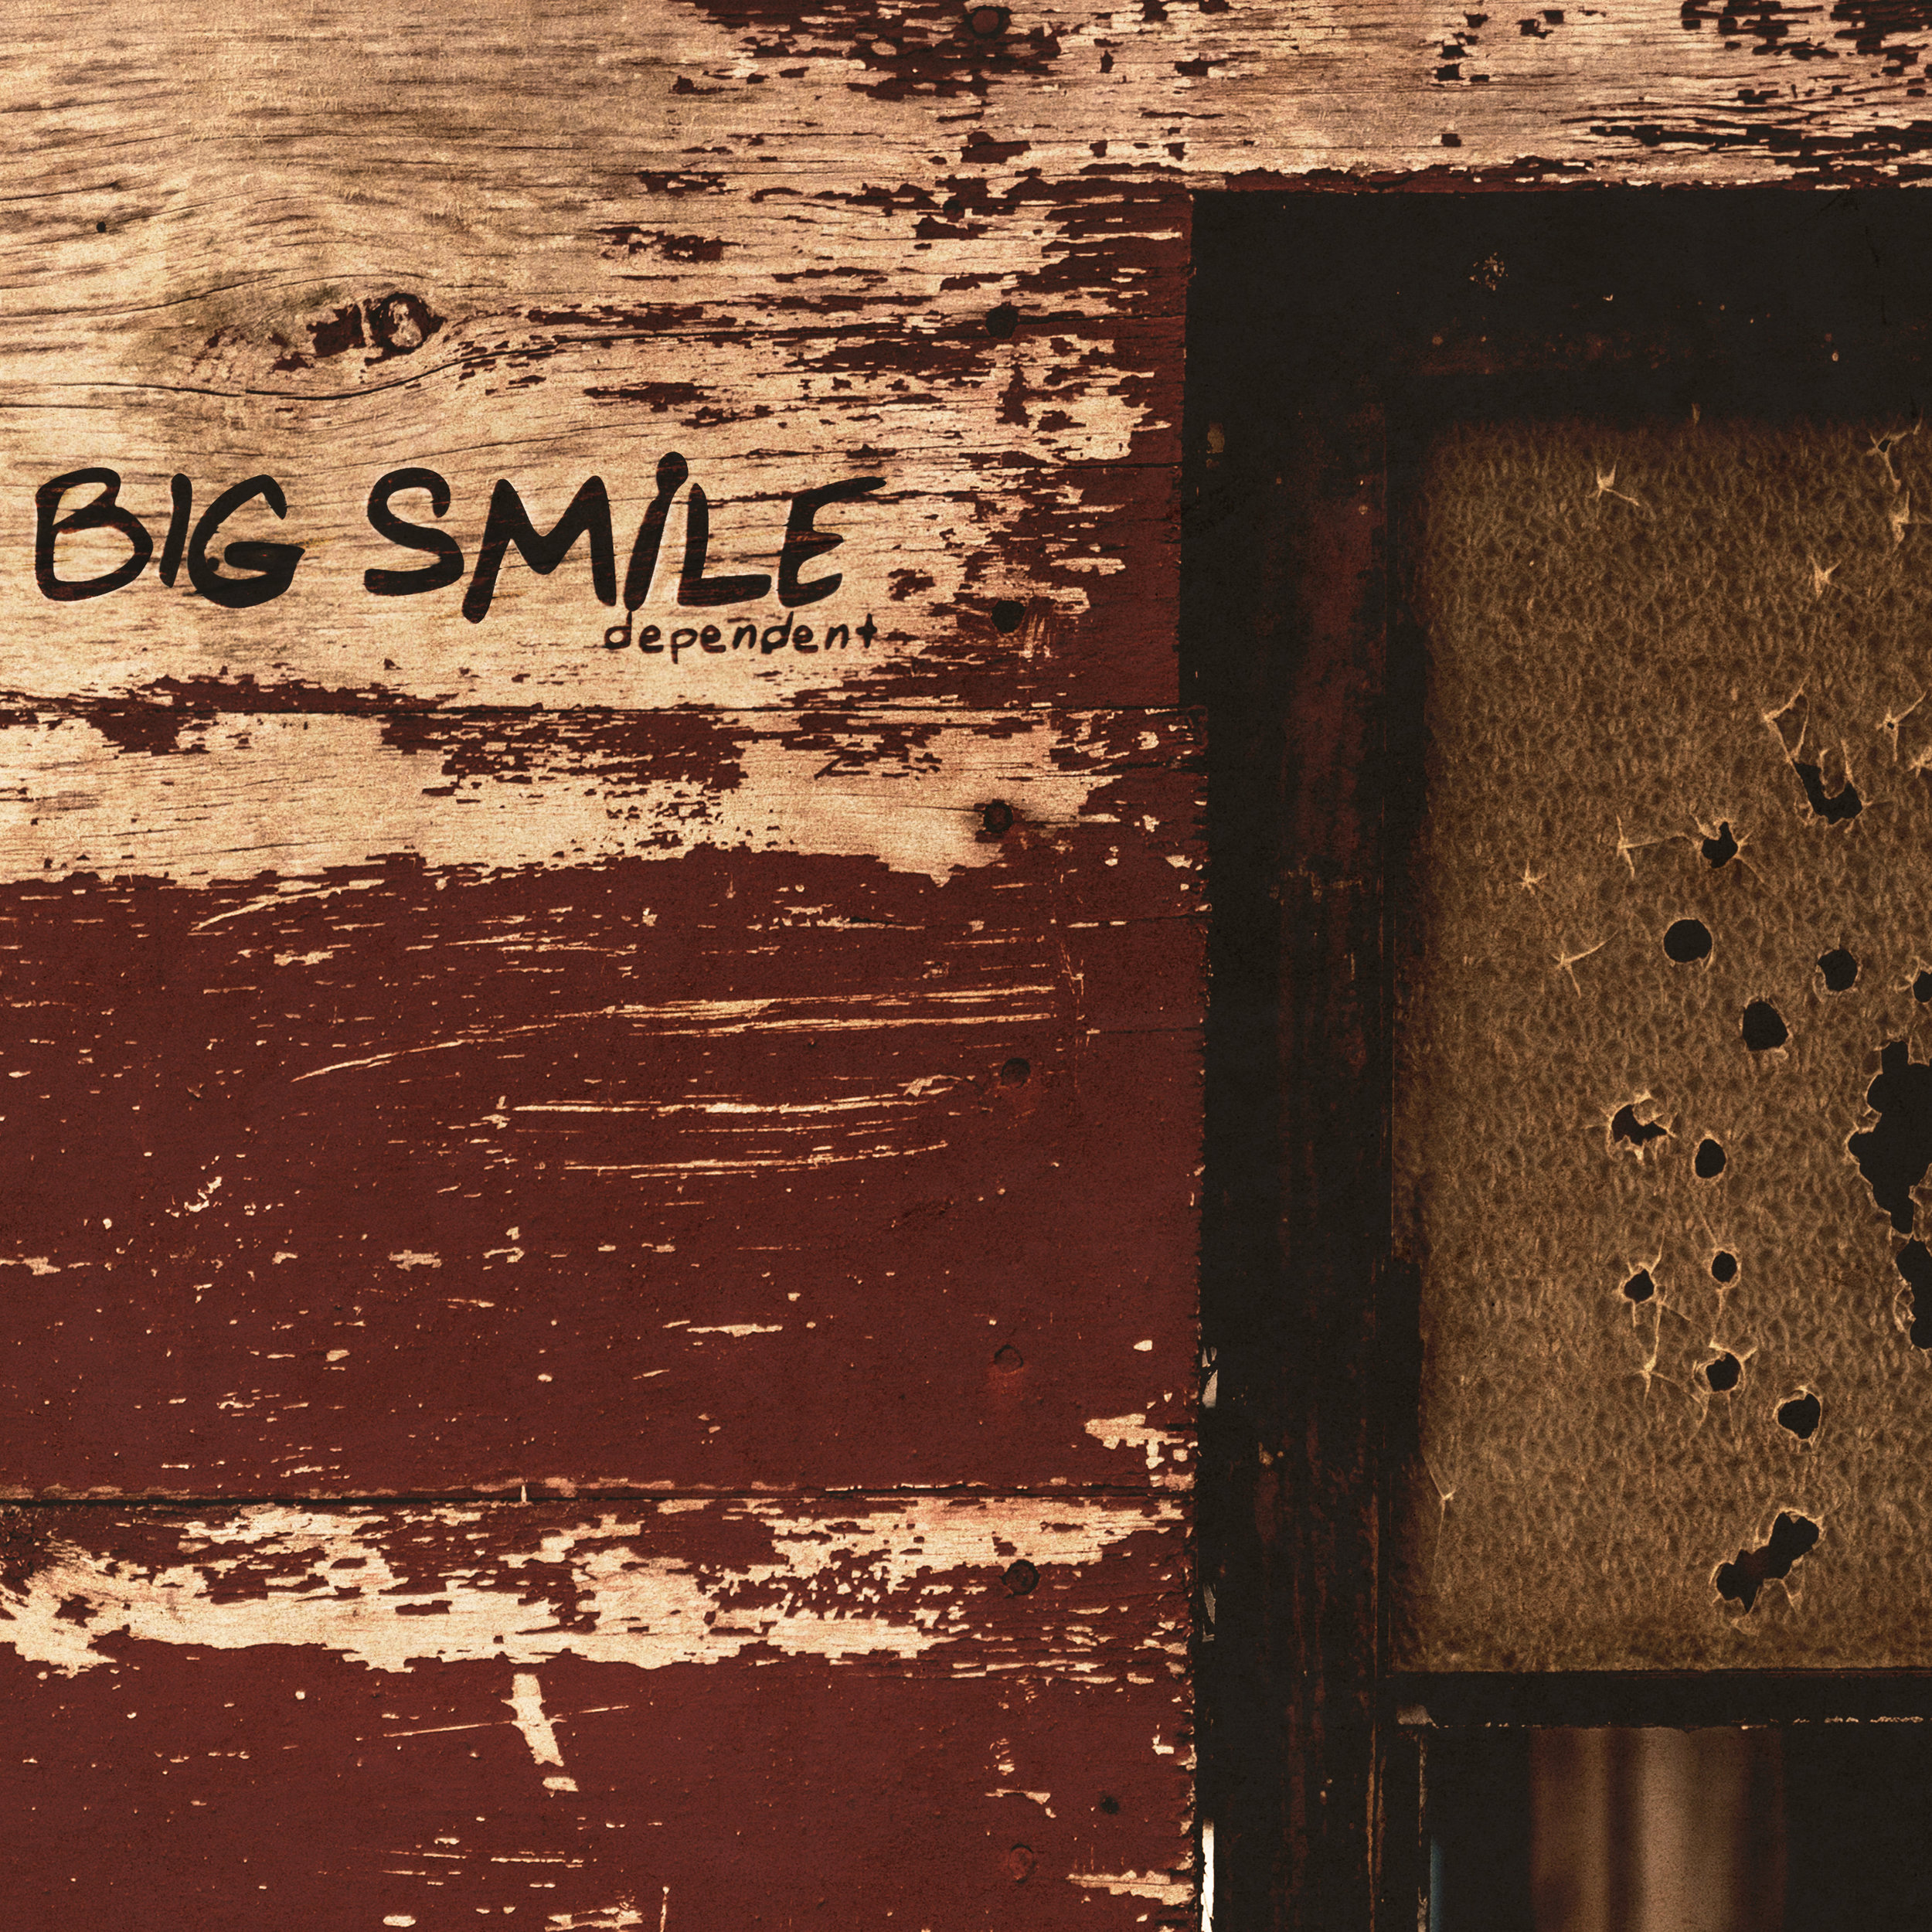 BigSmile-Dependent-AlbumArt-FINAL.jpg